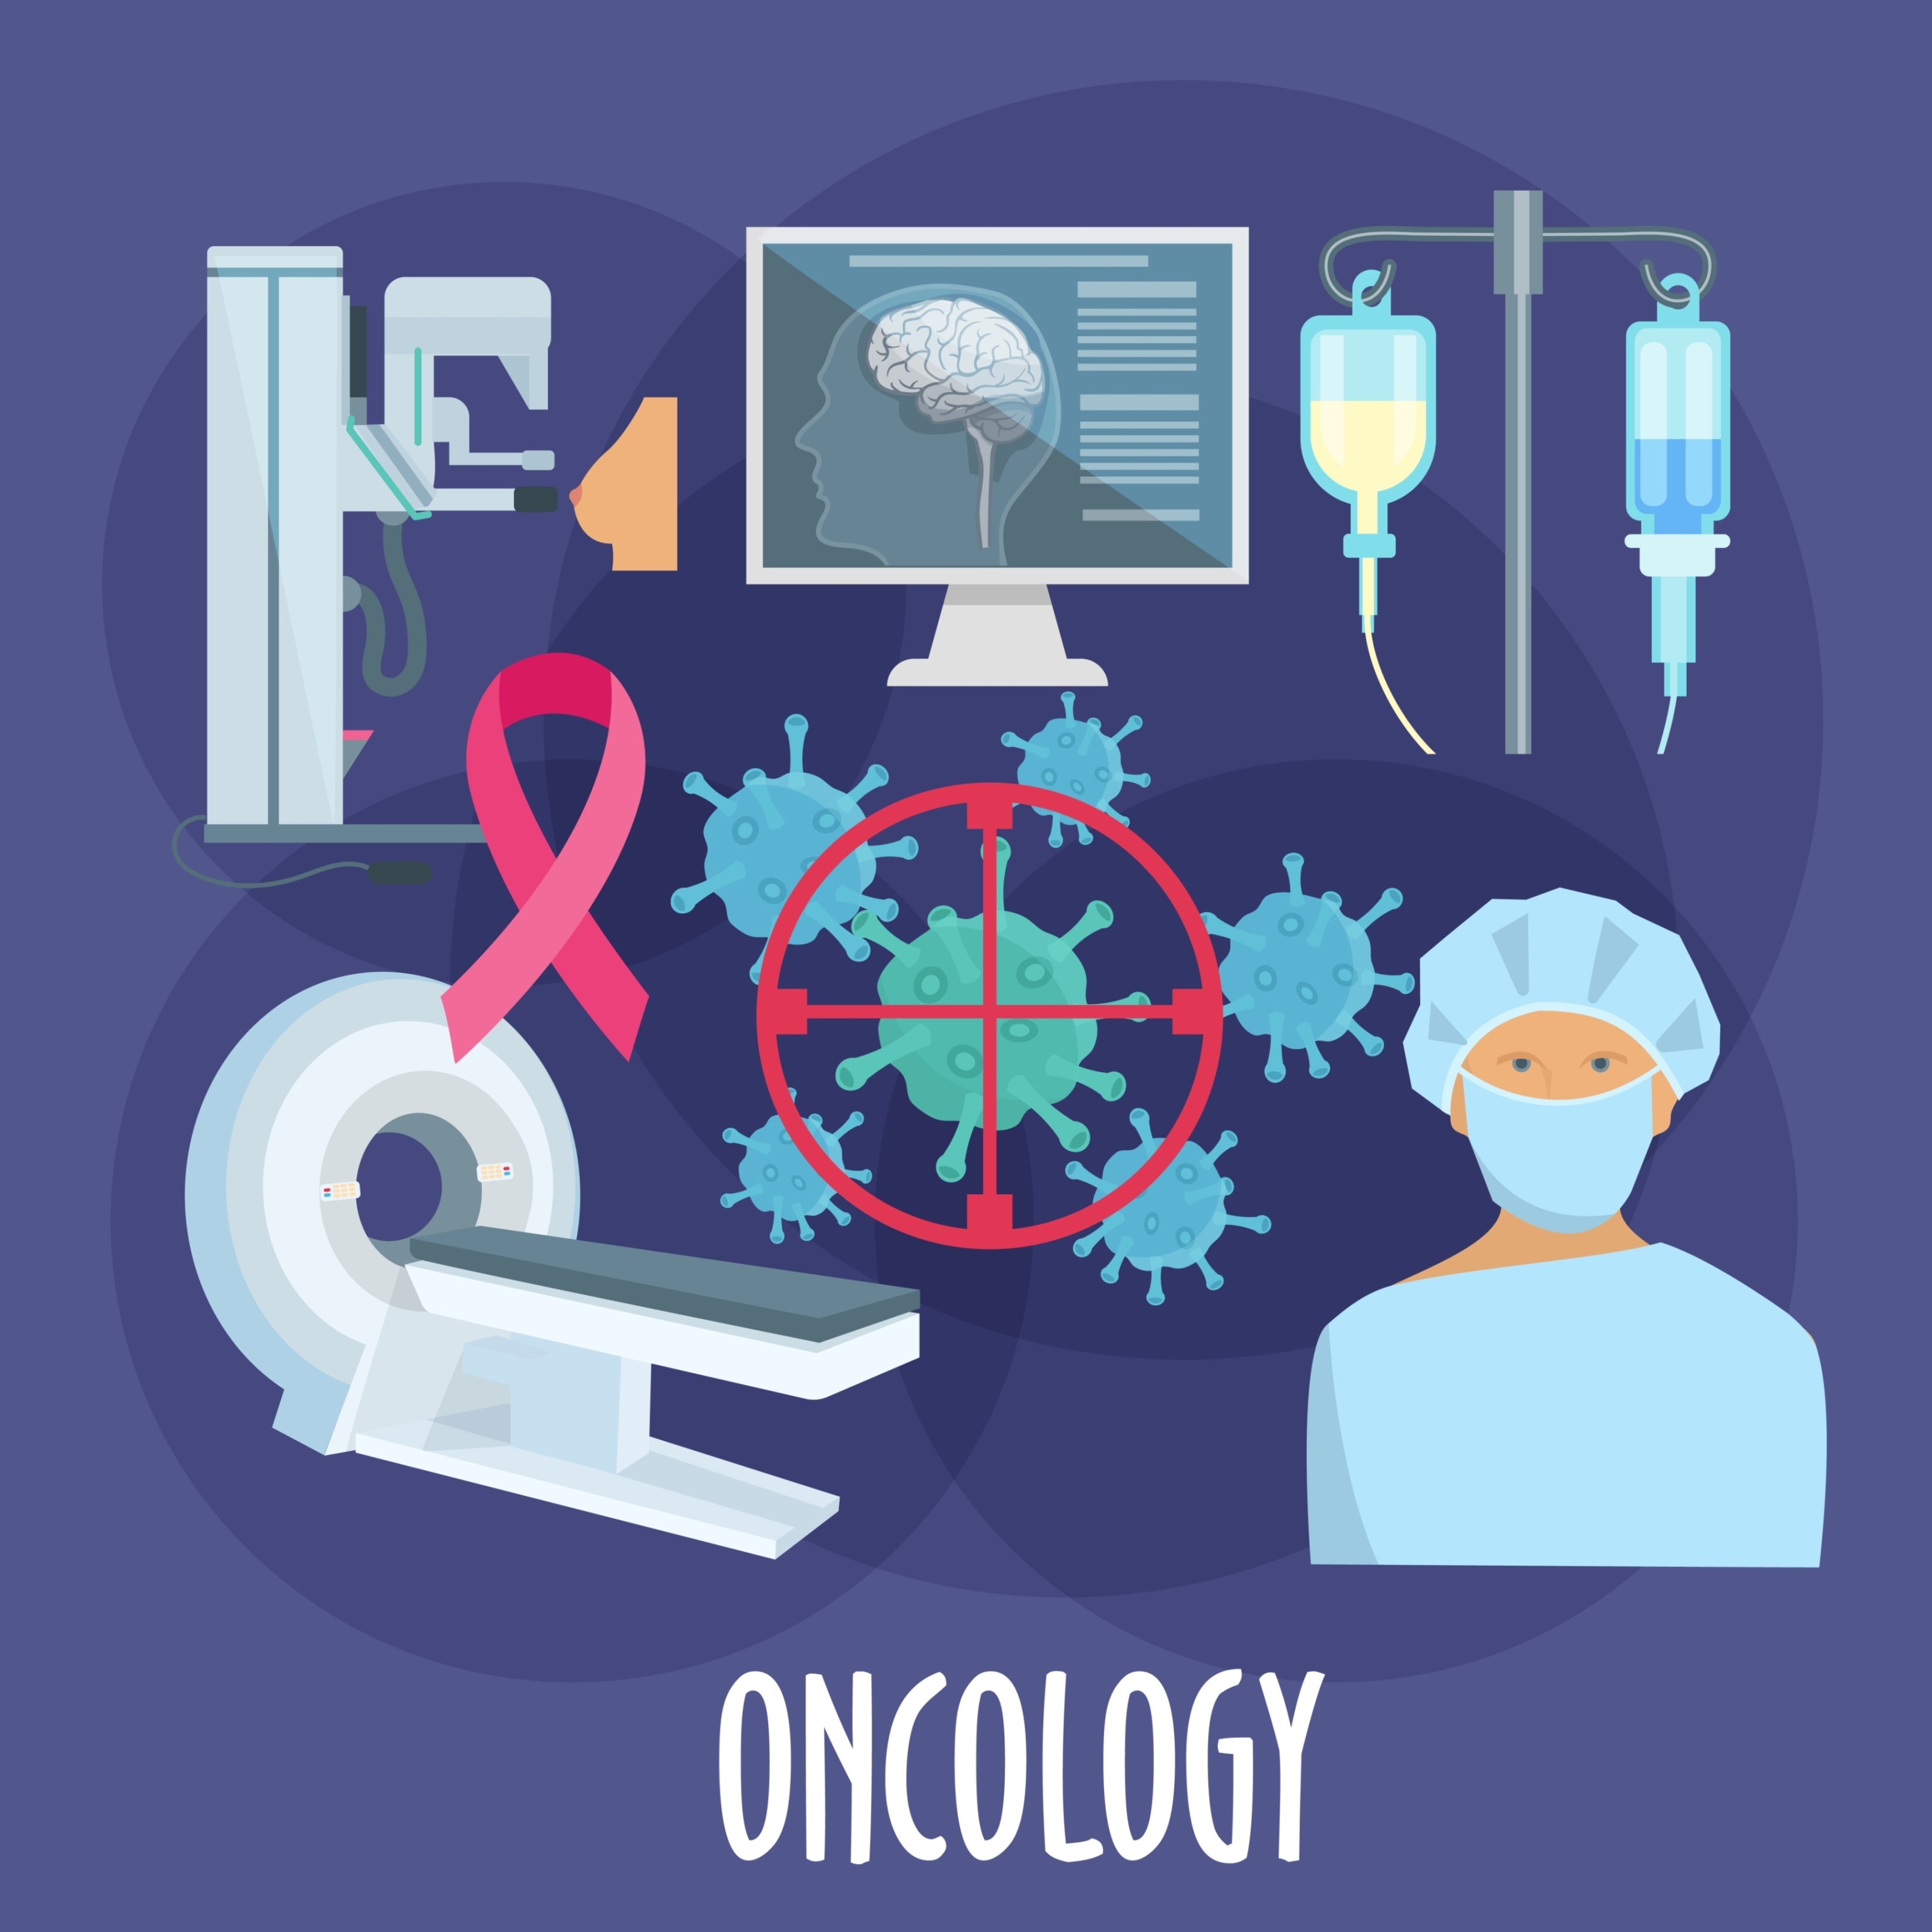 Oncology - Cancer Treatment